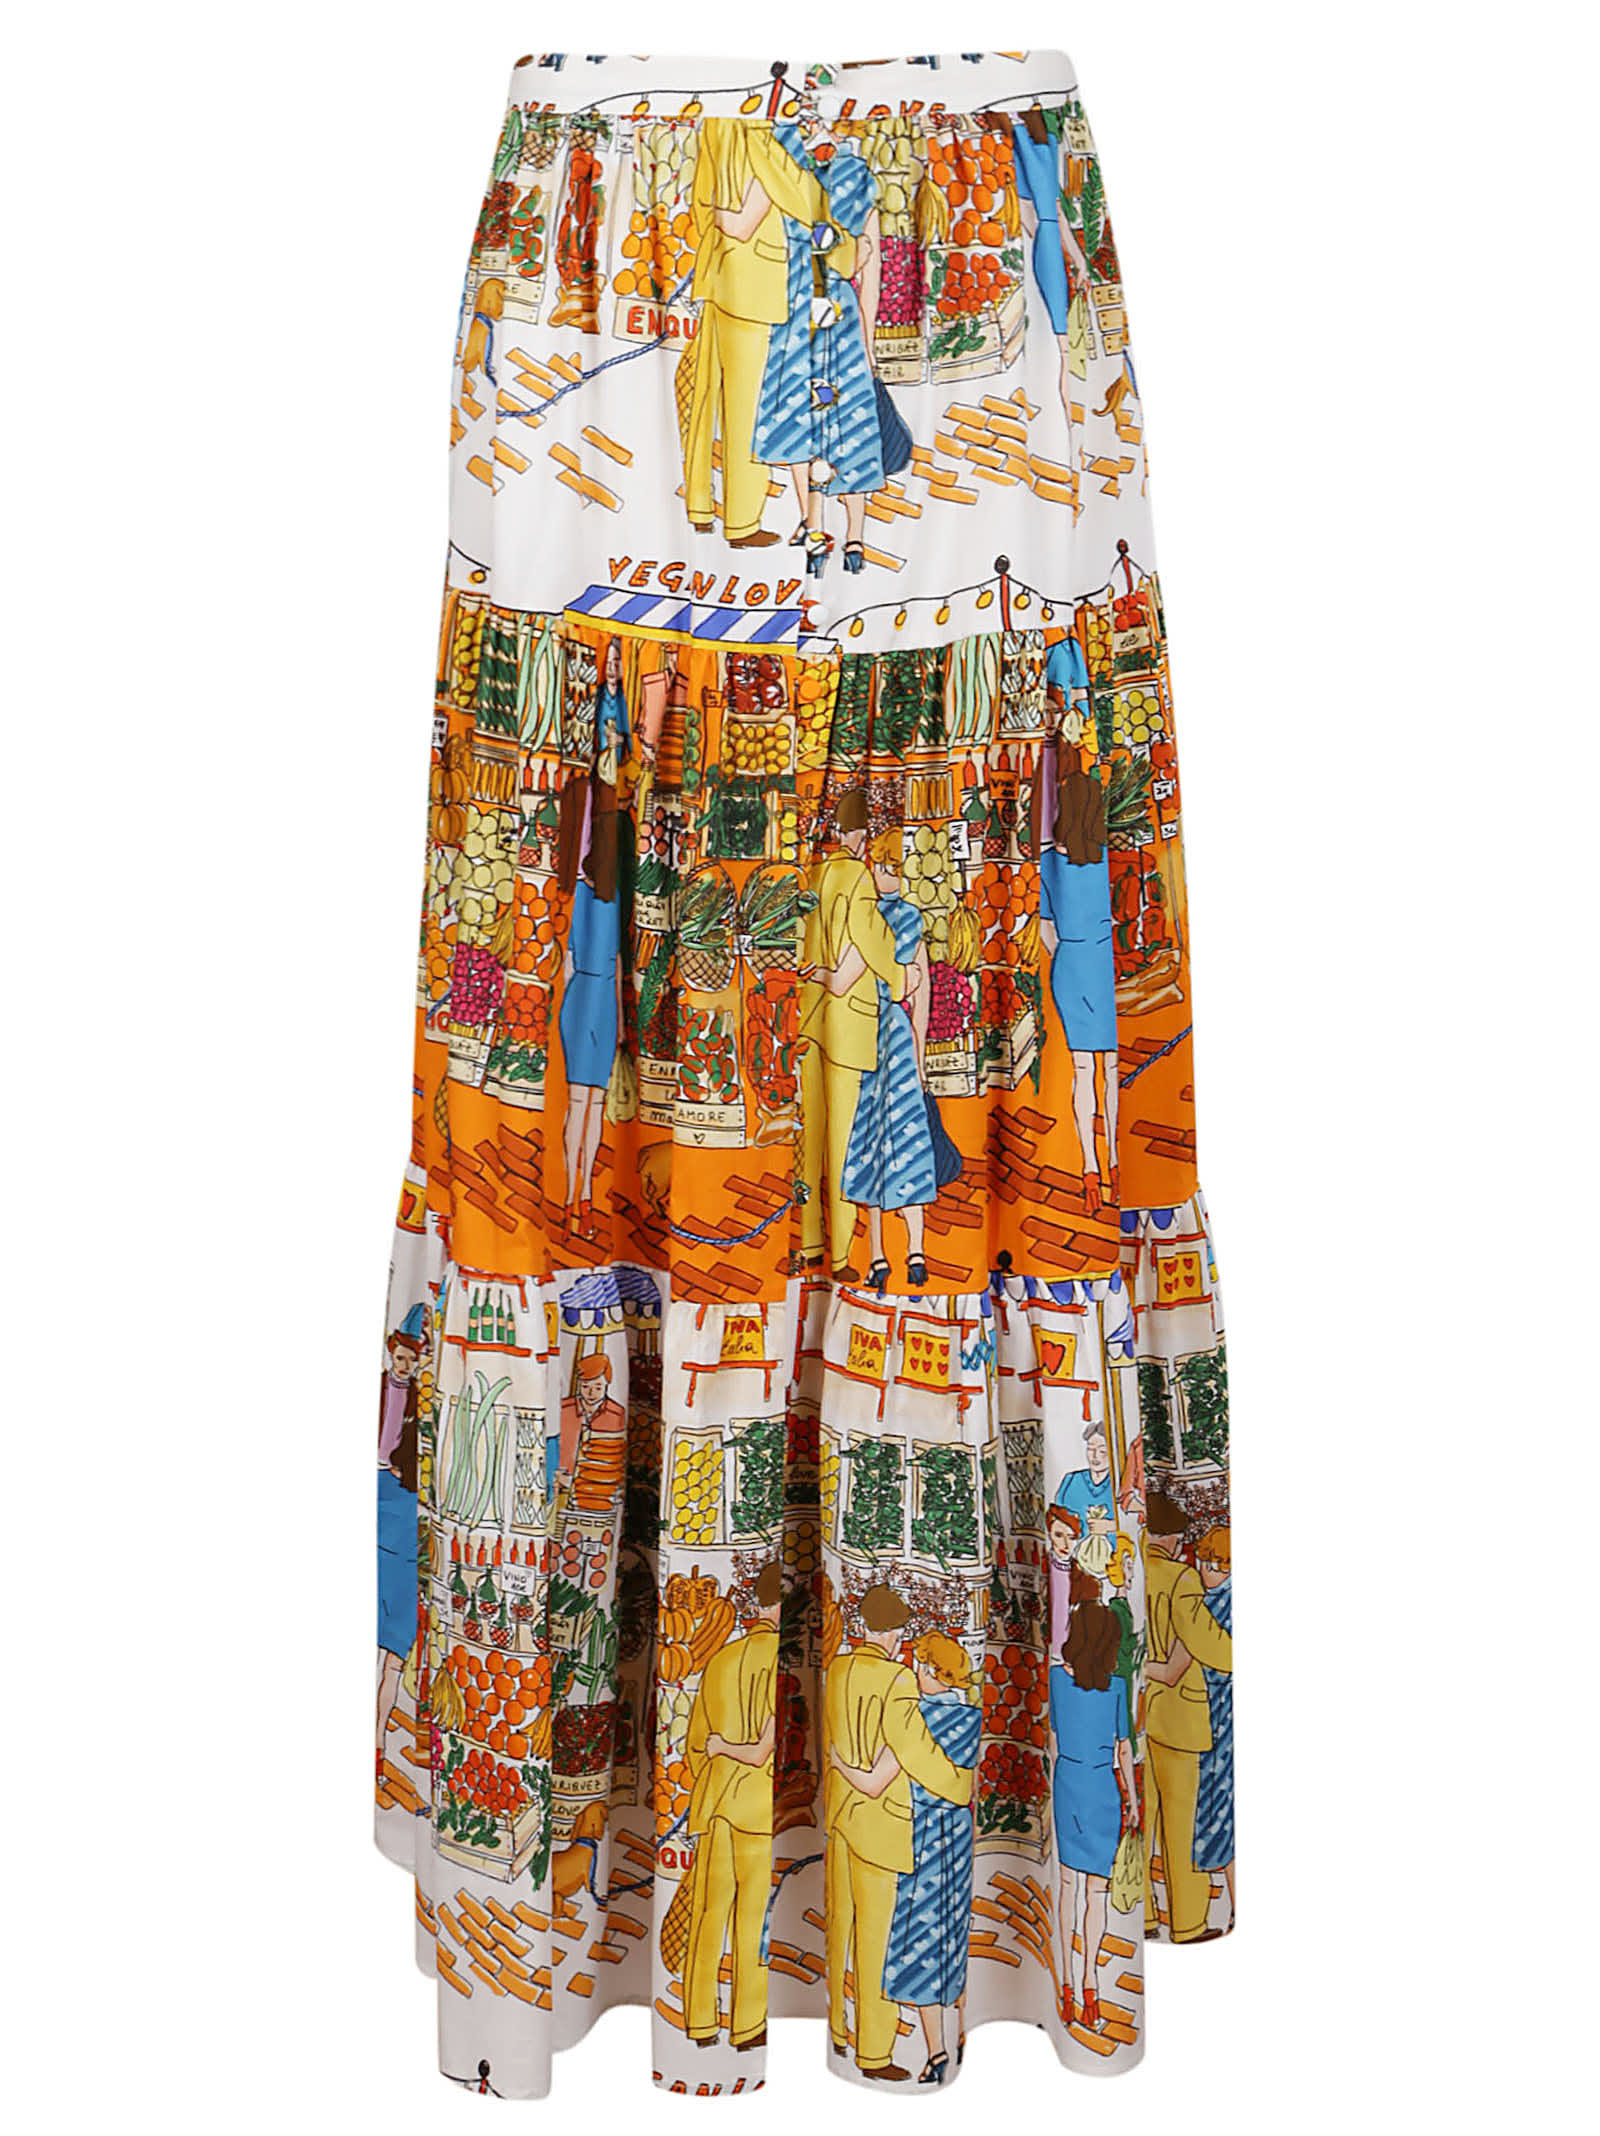 Alessandro Enriquez MULTICOLOR COTTON SKIRT